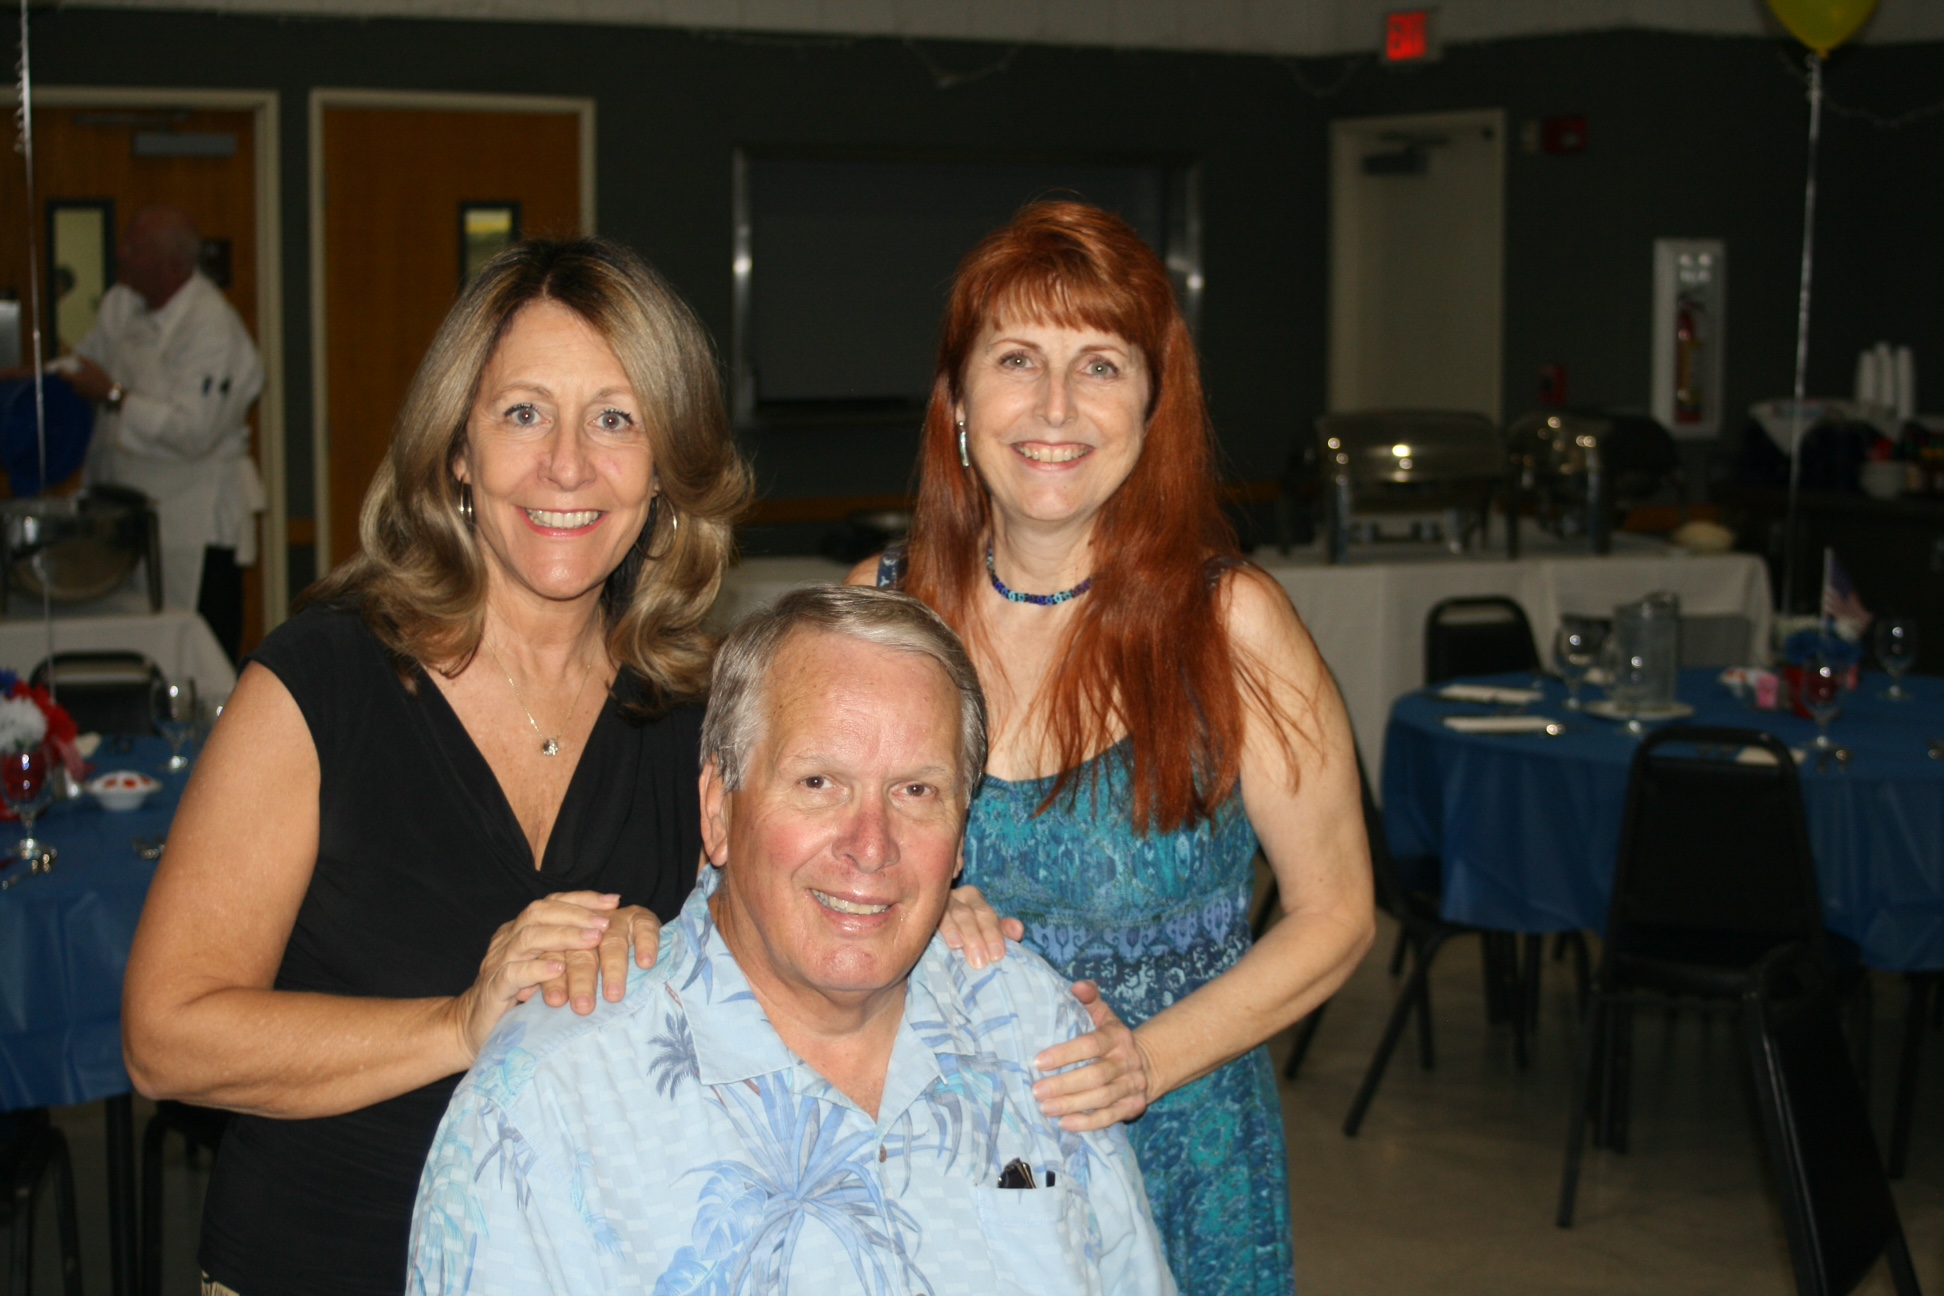 Organizers of the Burbank Police Boys Band reunion are, from left, Joanne Lento Miller, Bill Kuzma and Joyce Rudolph. (Courtesy Joanne Miller)